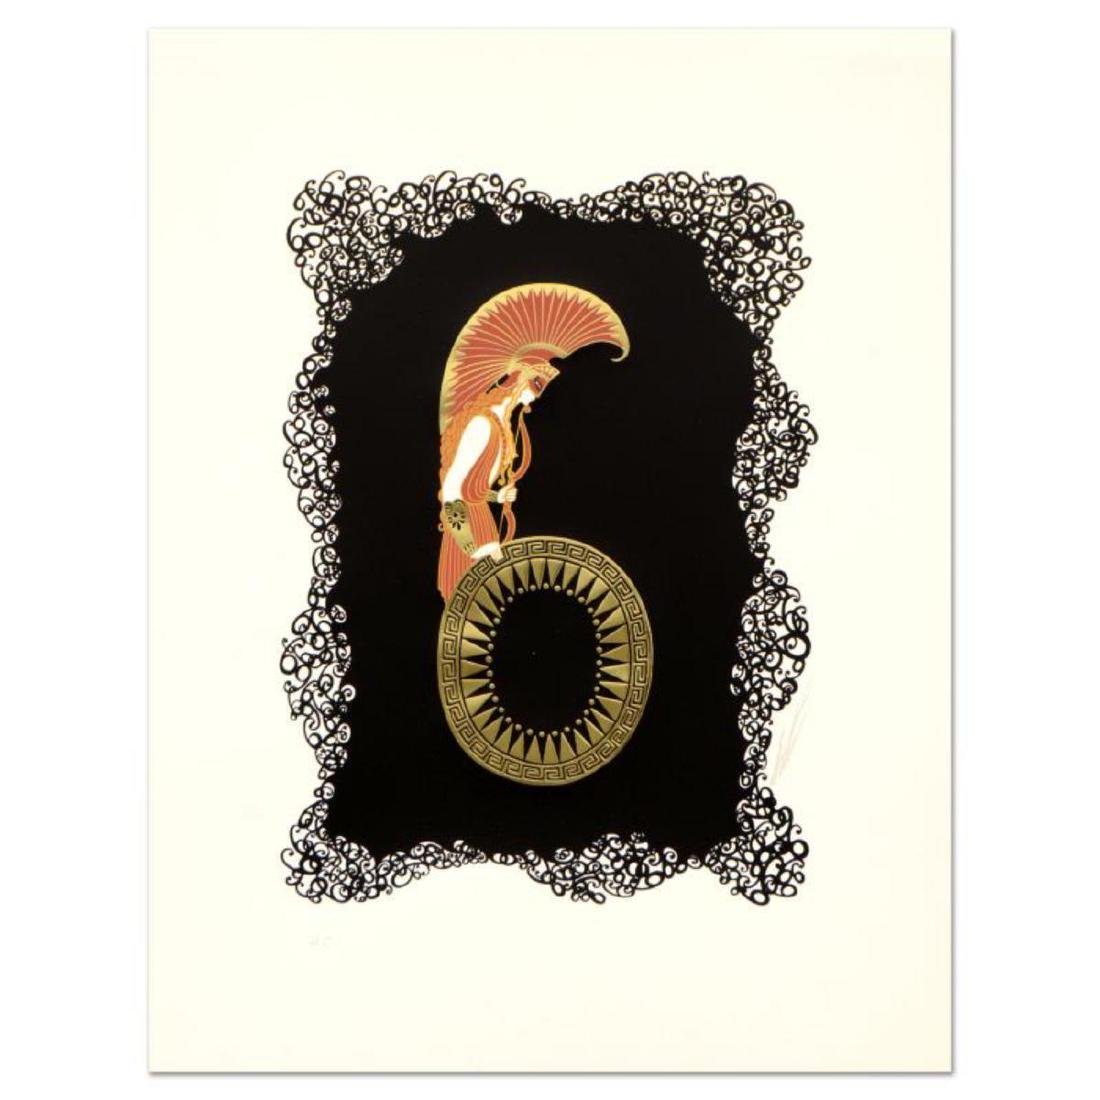 "Erte (1892-1990) - ""Numeral 6"" Limited Edition"